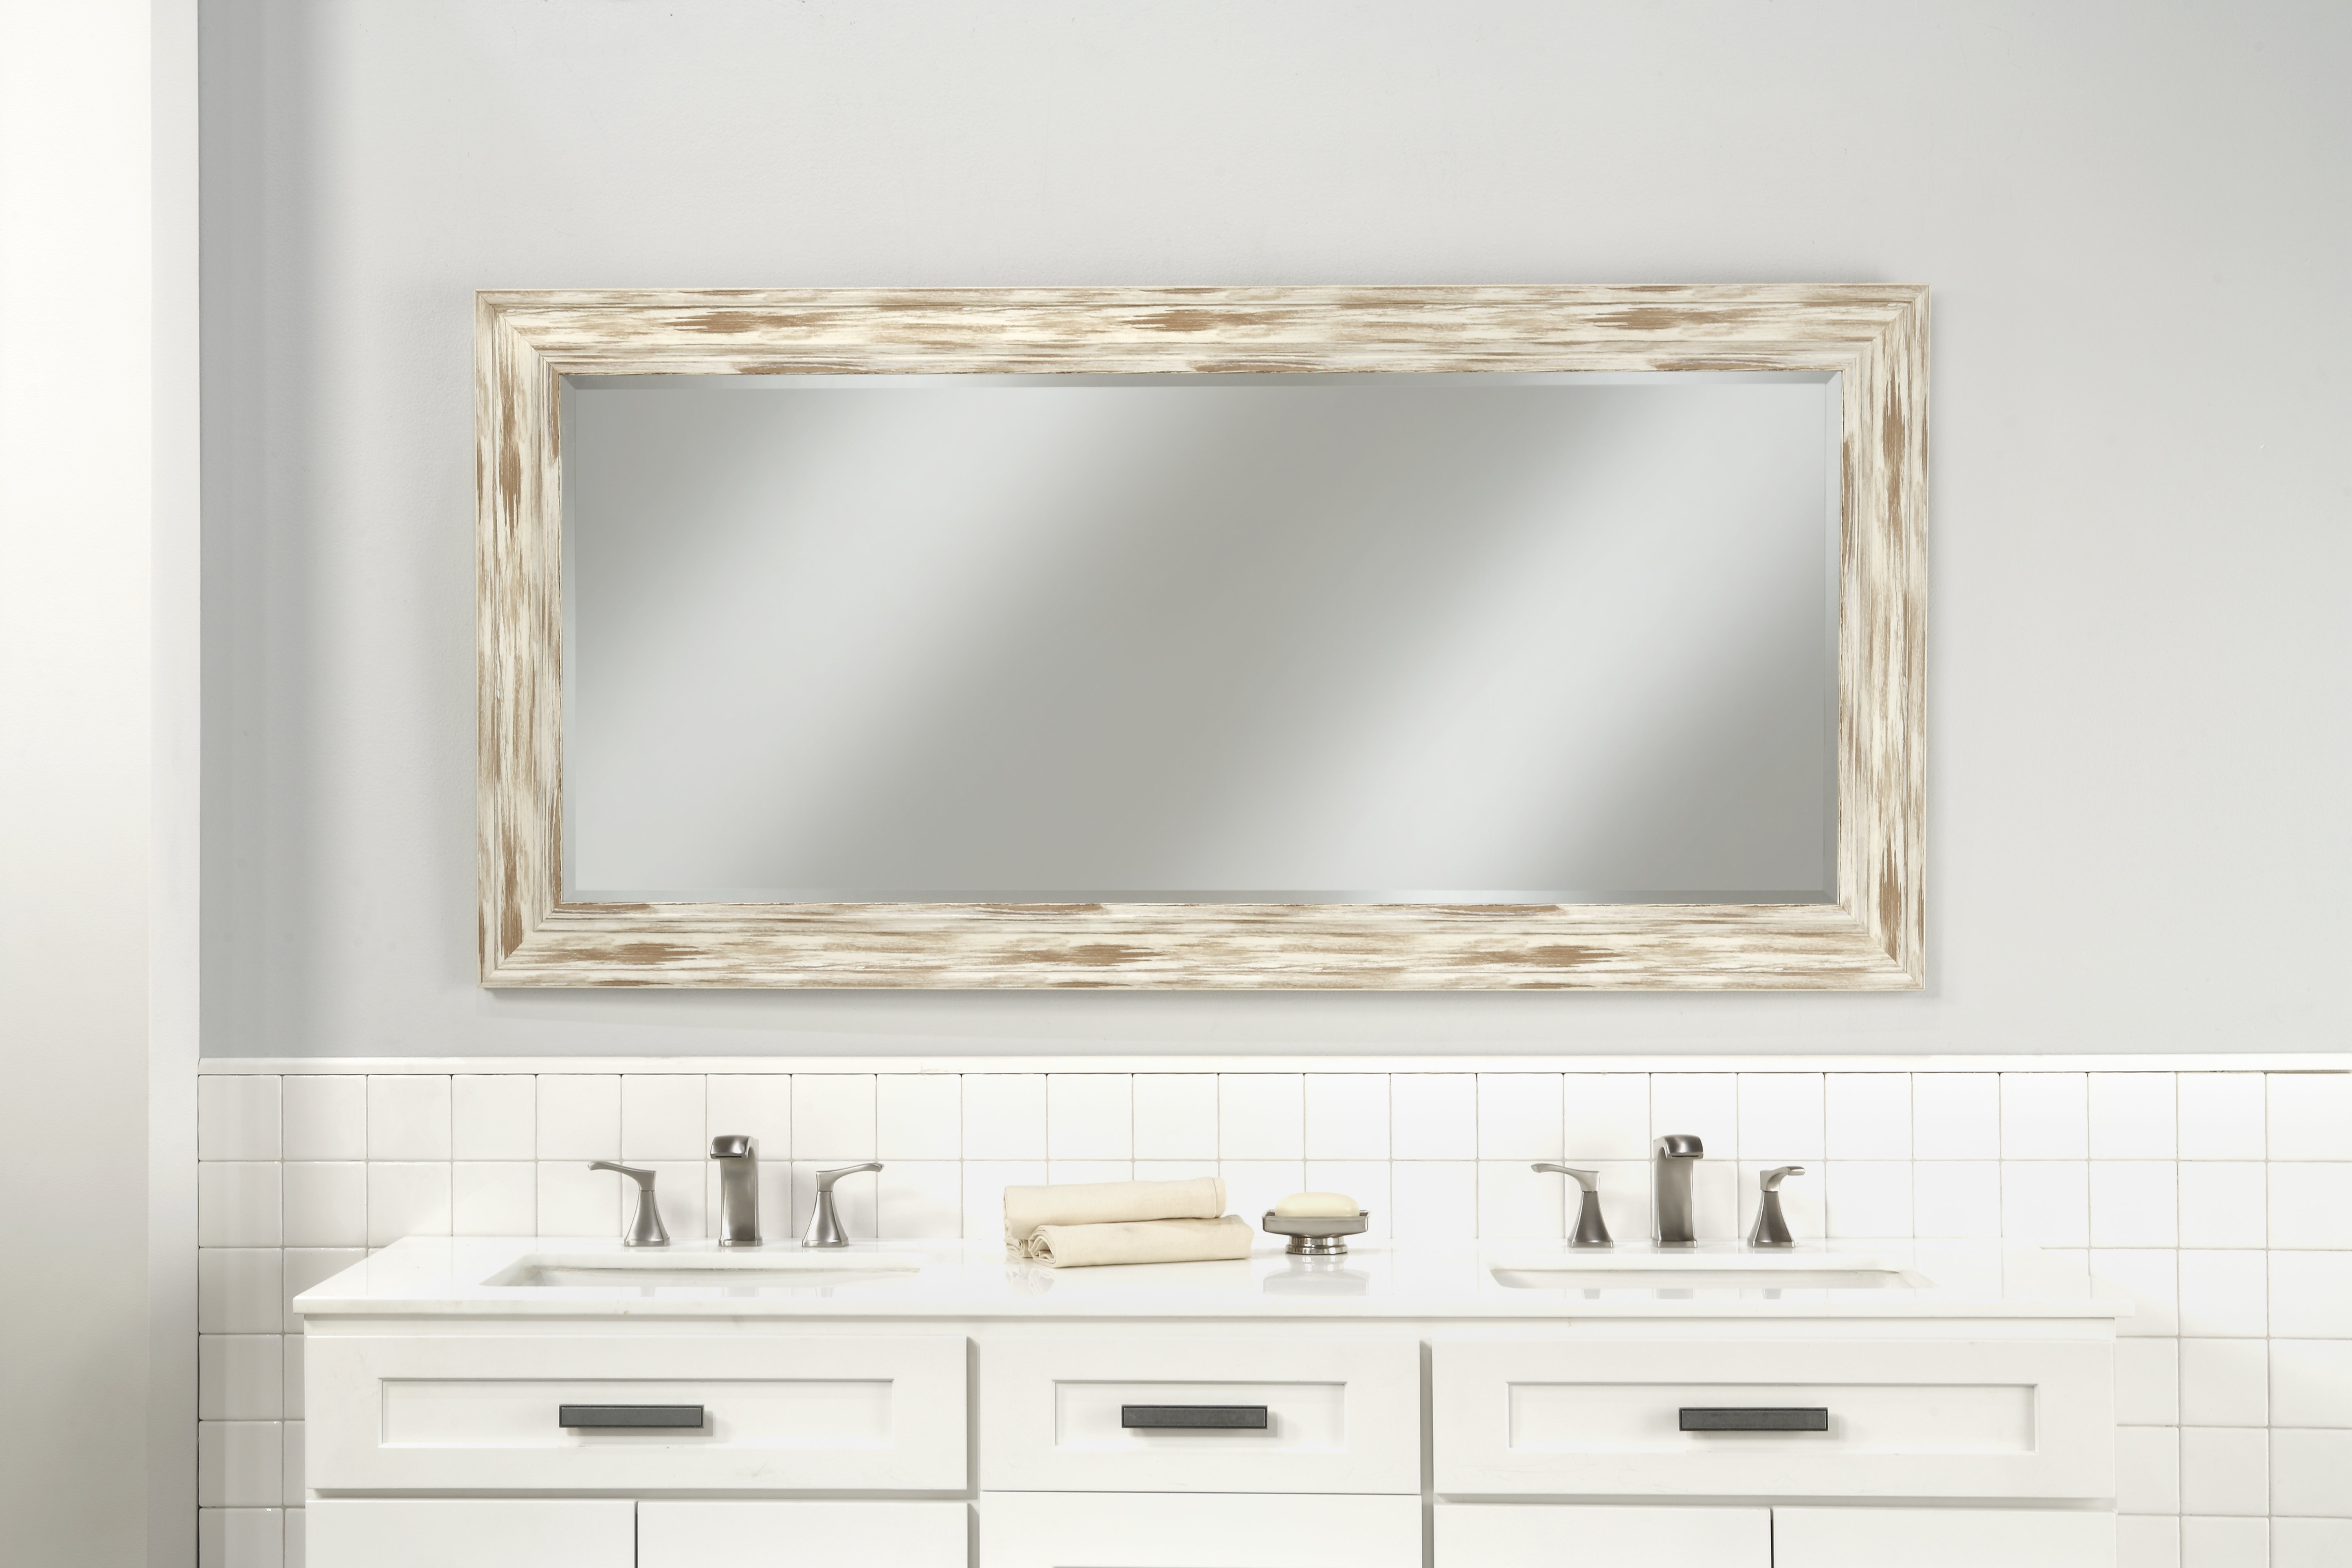 Farmhouse & Rustic Three Posts Wall & Accent Mirrors | Birch Within Shildon Beveled Accent Mirrors (View 8 of 20)